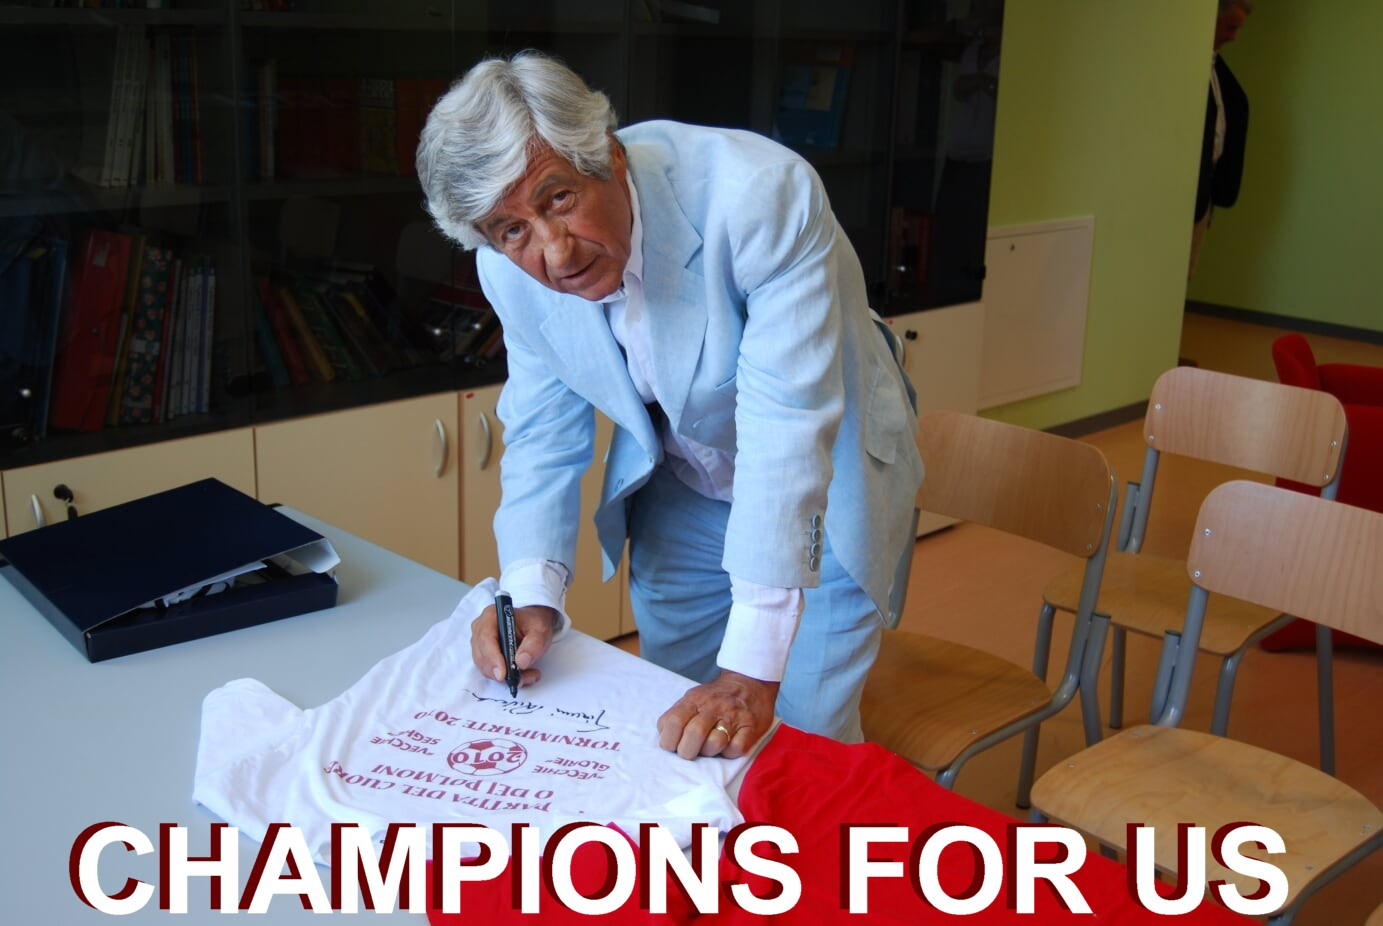 Champions for A.S.